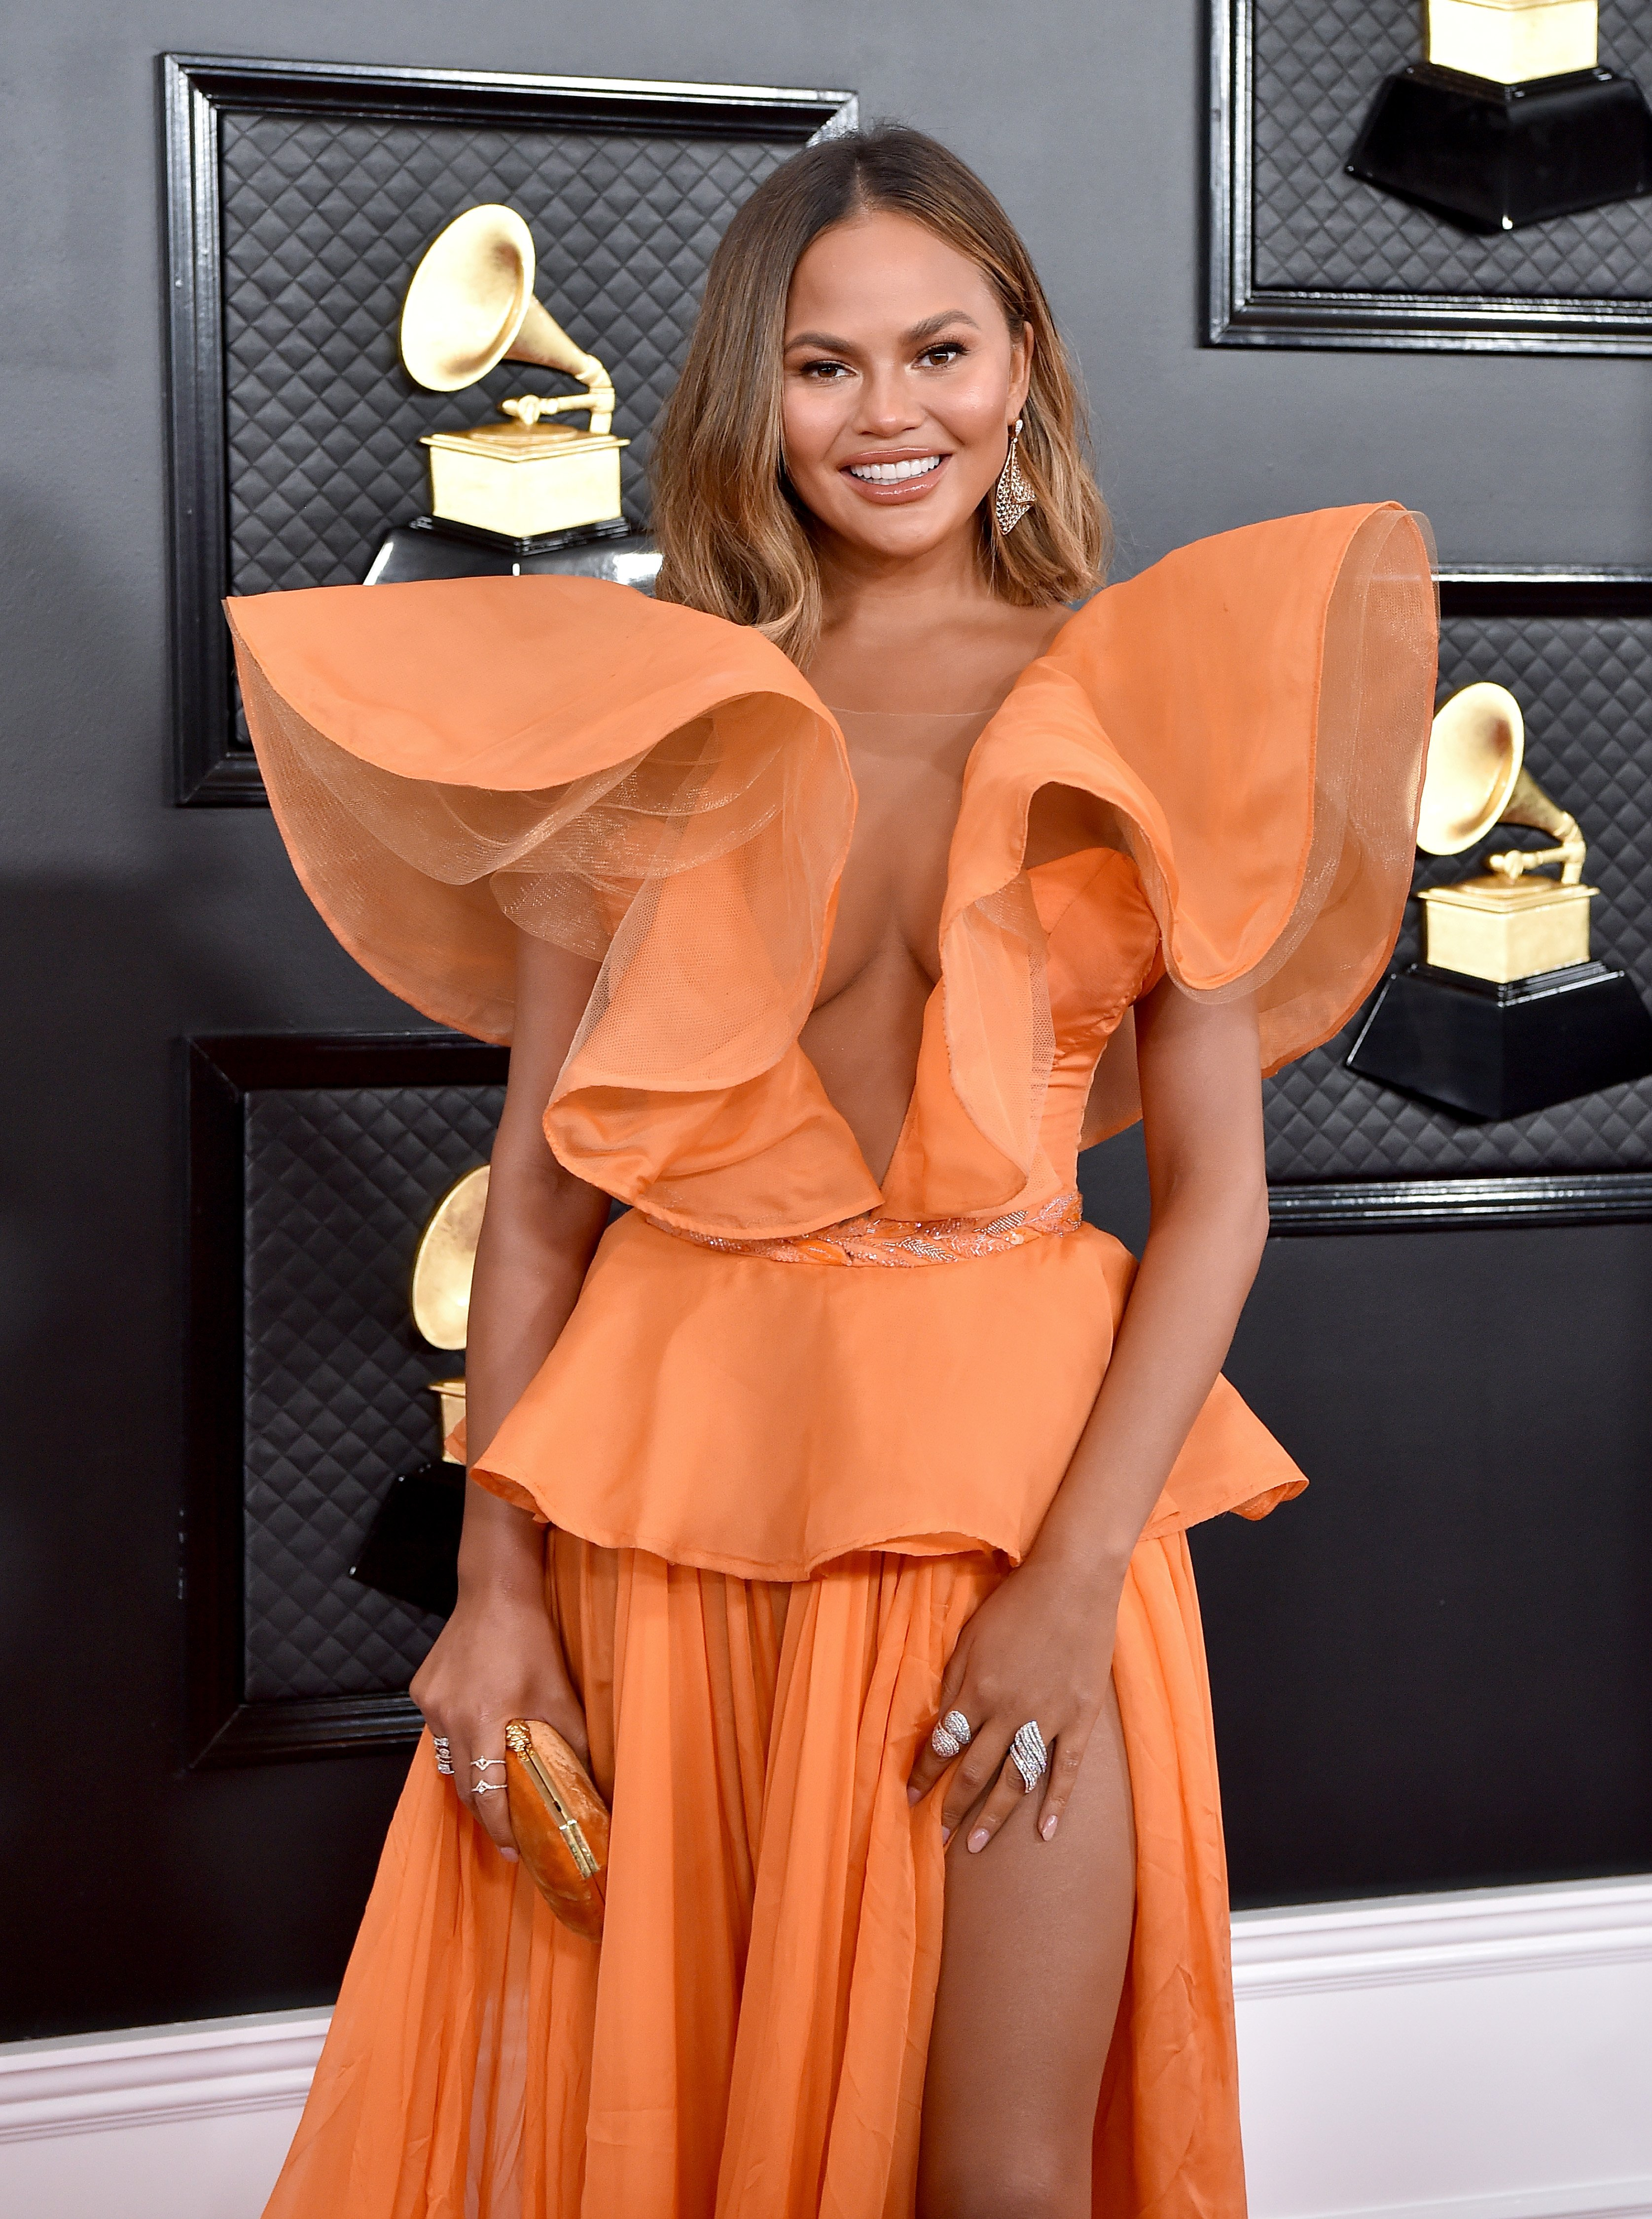 Chrissy Teigen at the 62nd Annual Grammy Awards at Staples Center on January 26, 2020 in Los Angeles, California.|Source: Getty Images